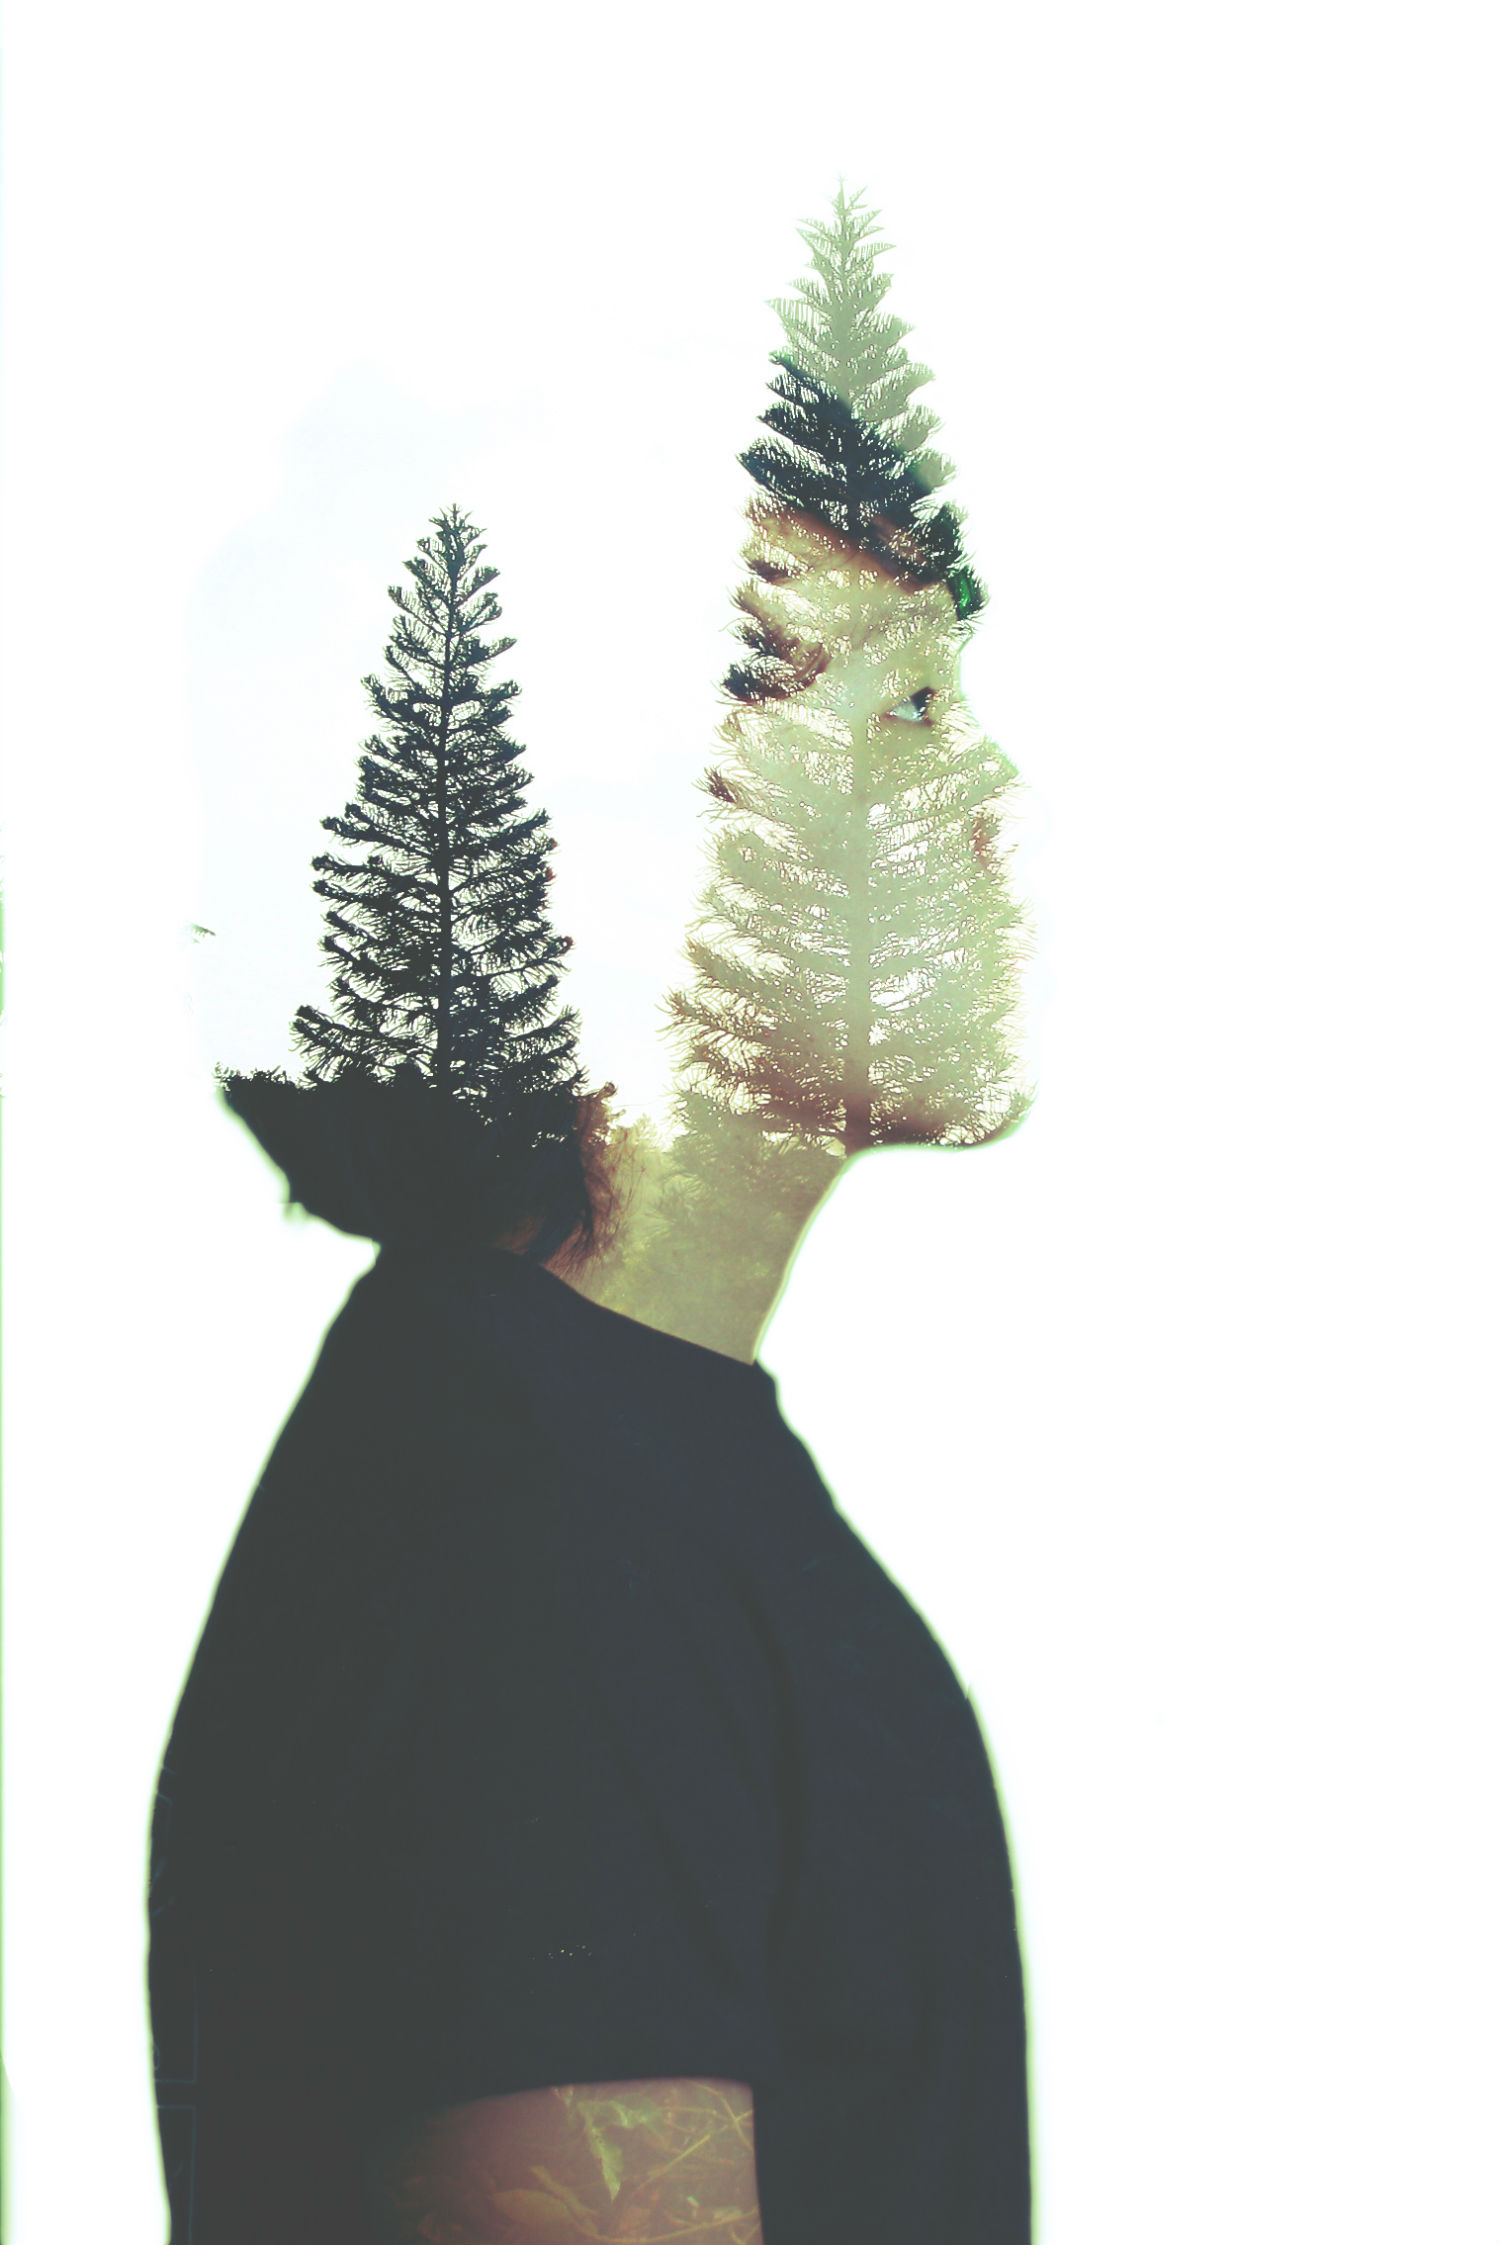 The Beauty of Double Exposure Photography